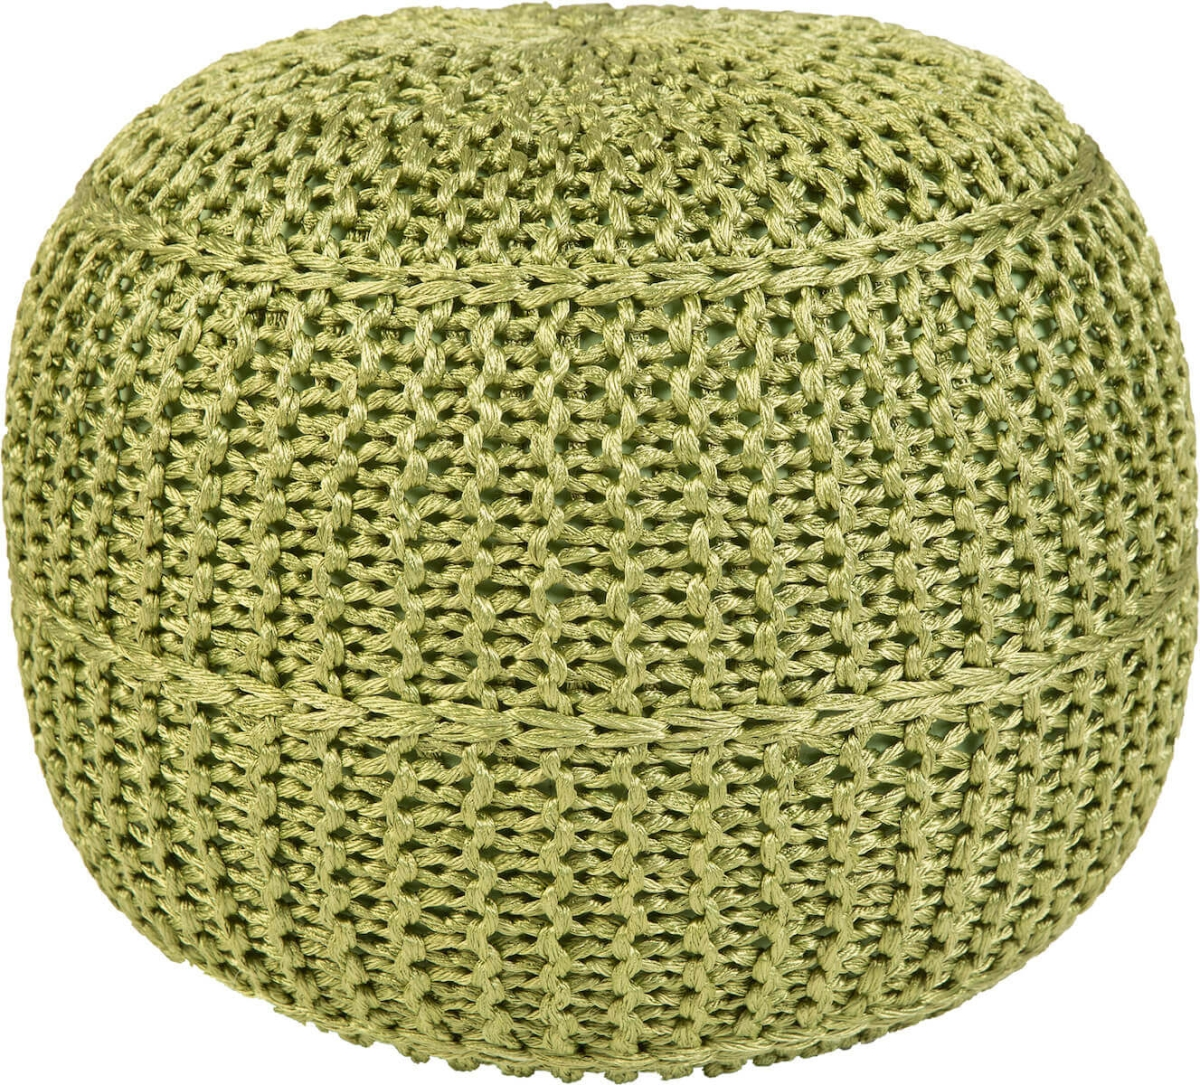 Pouf Mesh Outdoor Apple